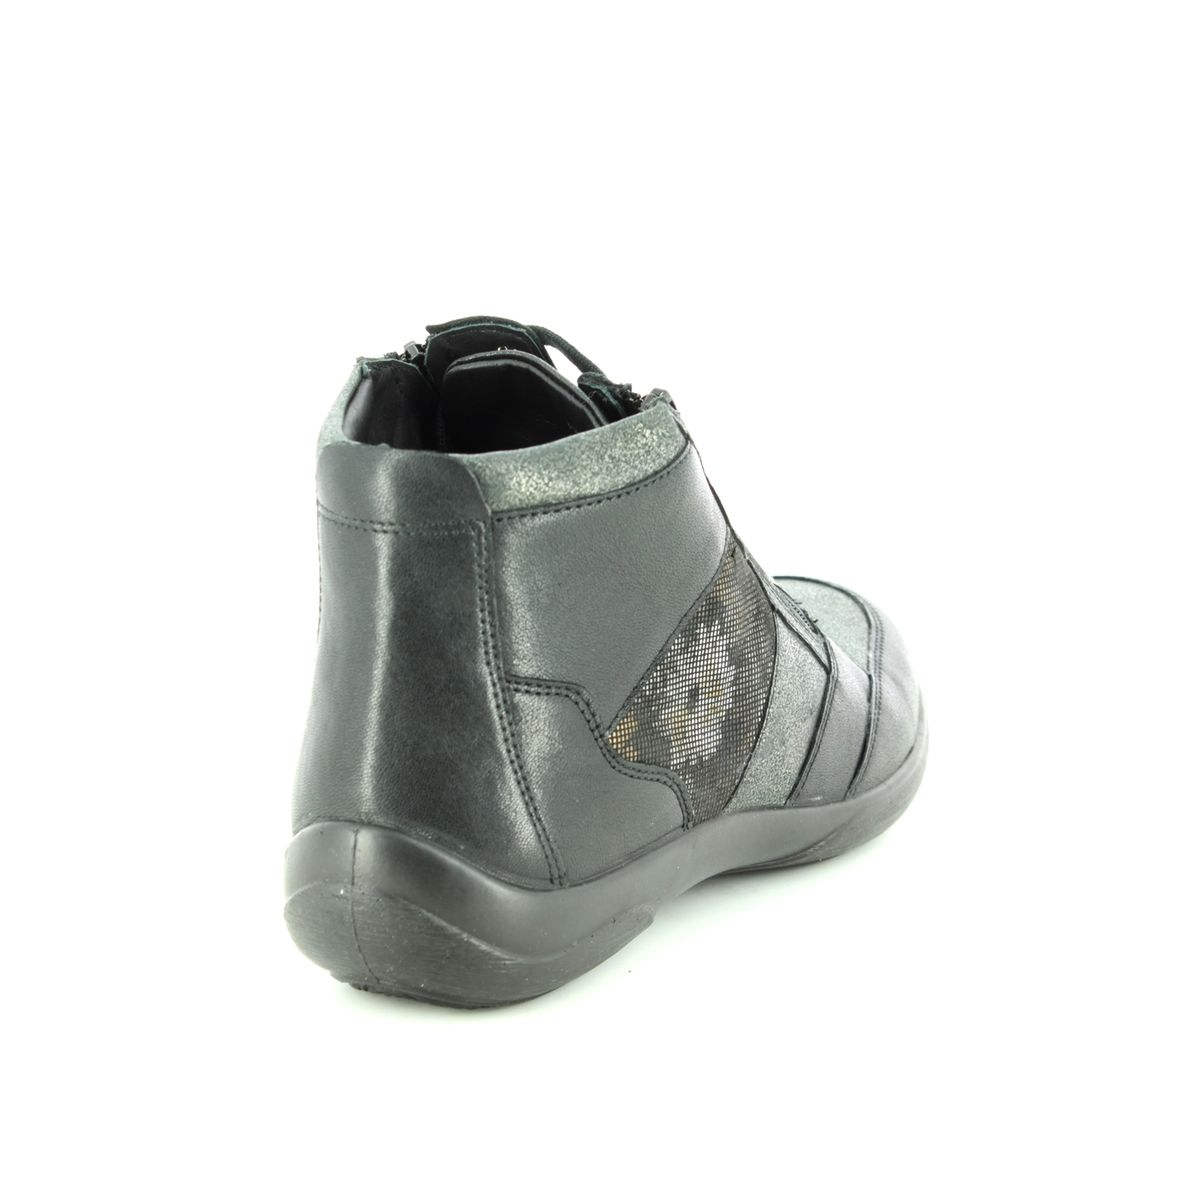 6f3ac66251a Padders Ankle Boots - Black leather - 0875 38 PICCOLO EE-EEE